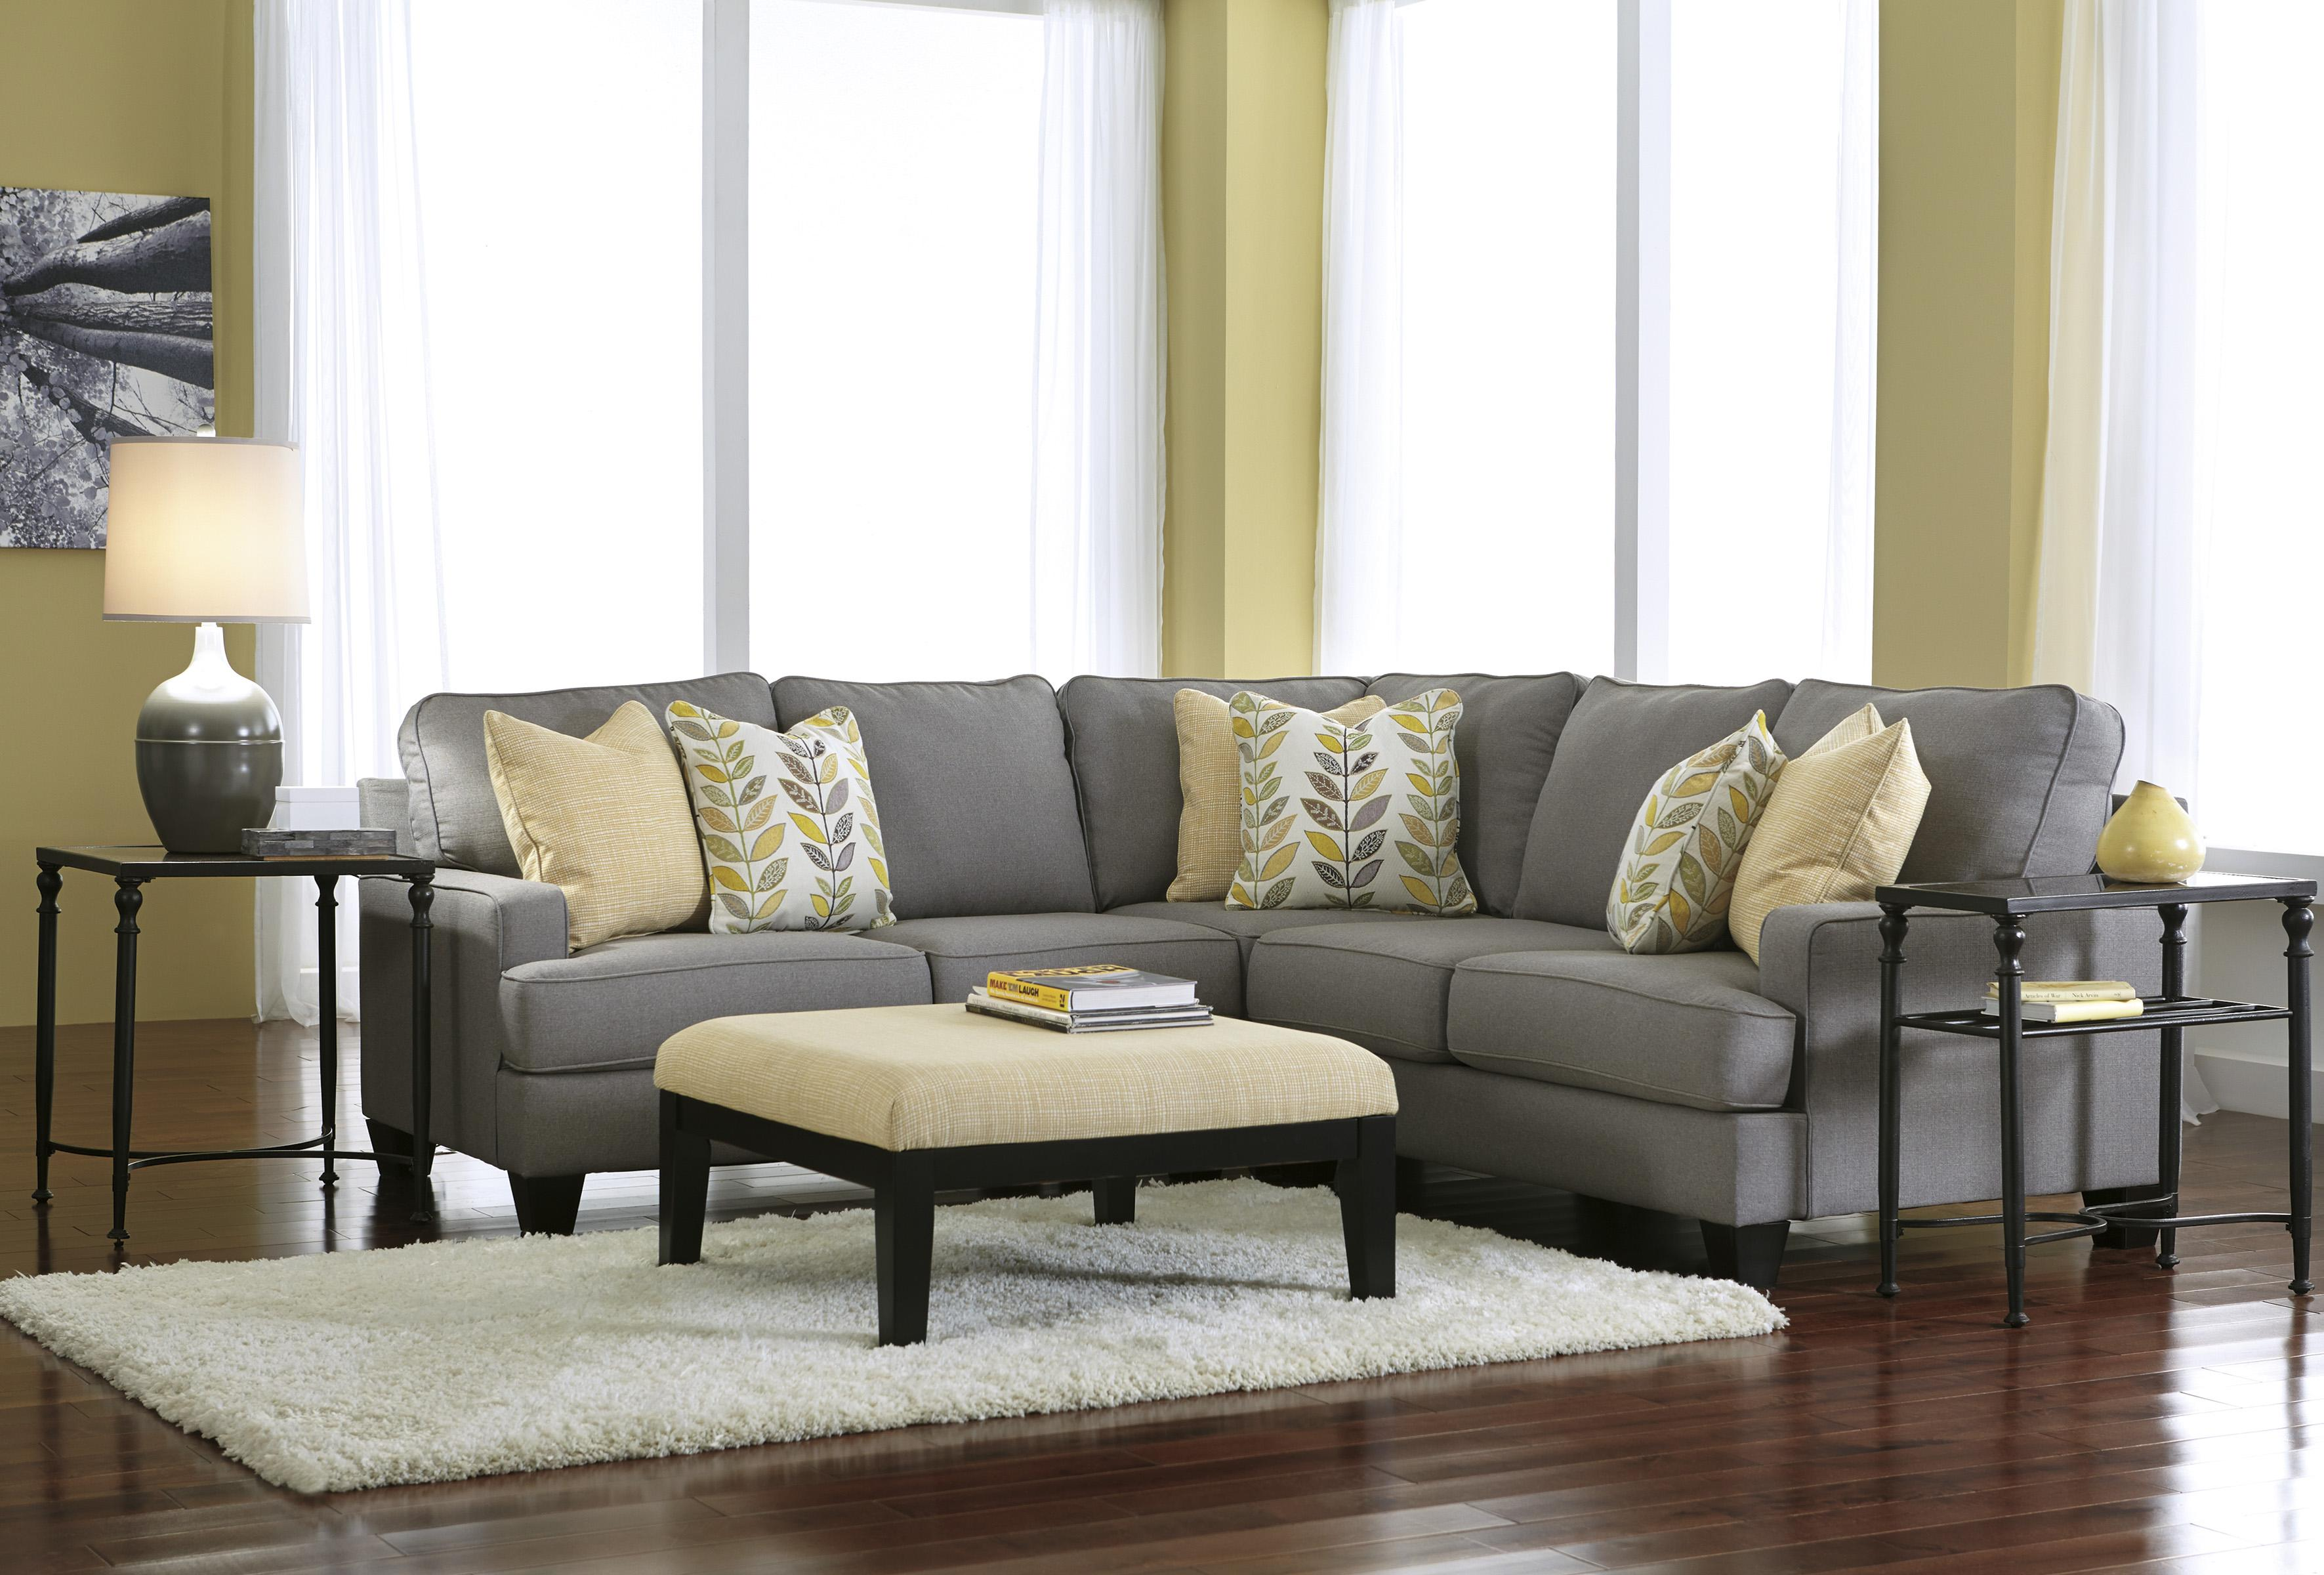 Signature Design By Ashley Chamberly Alloy Modern 3 Piece Corner Sectional Sofa With